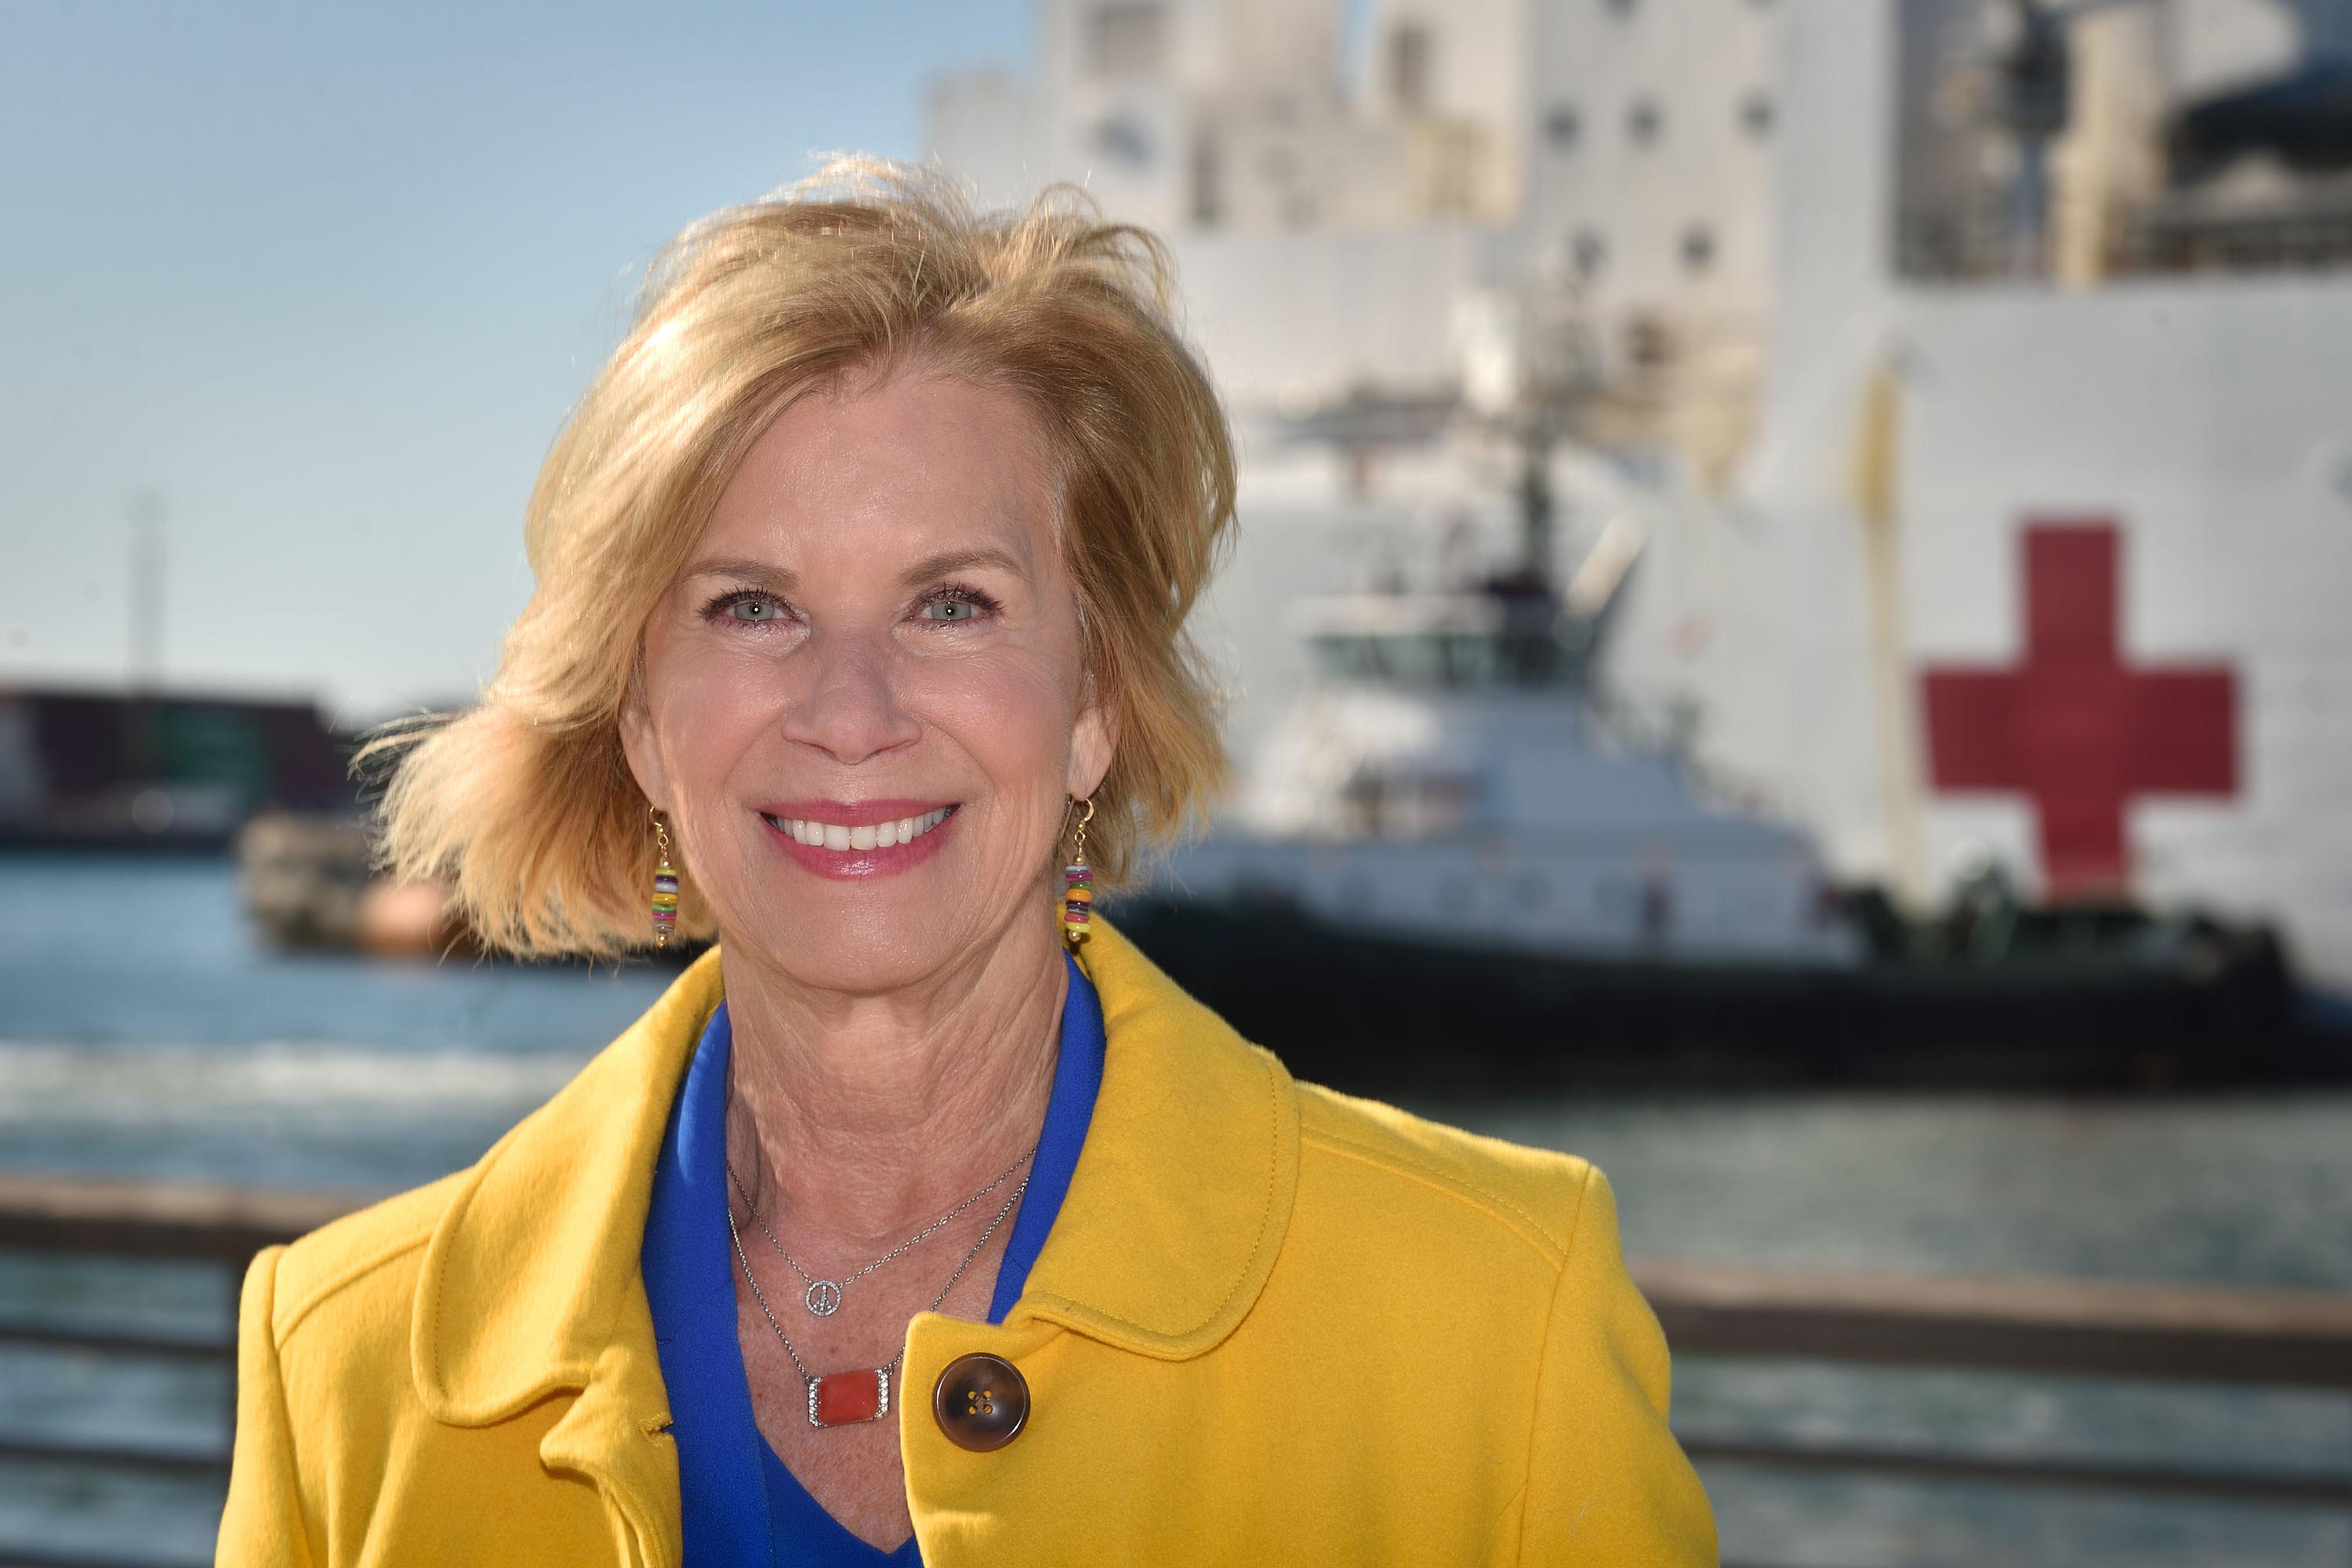 District 4 – Supervisor Janice Hahn<br> <b>March 27, 2020 – Arrival of the USNS Mercy in San Pedro. </b><br> <i>Photo by Steven Georges / For the Board of Supervisors</i>